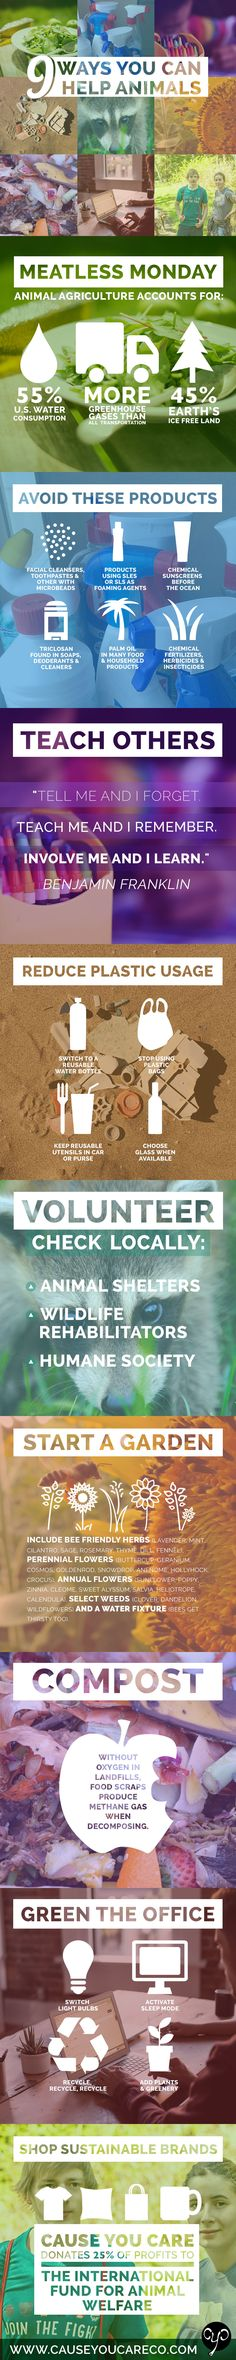 Looking for some ways that YOU can help save animals in your day-to-day? Learn about 9 things you can do to positively impact the planet and its wildlife. #infographic